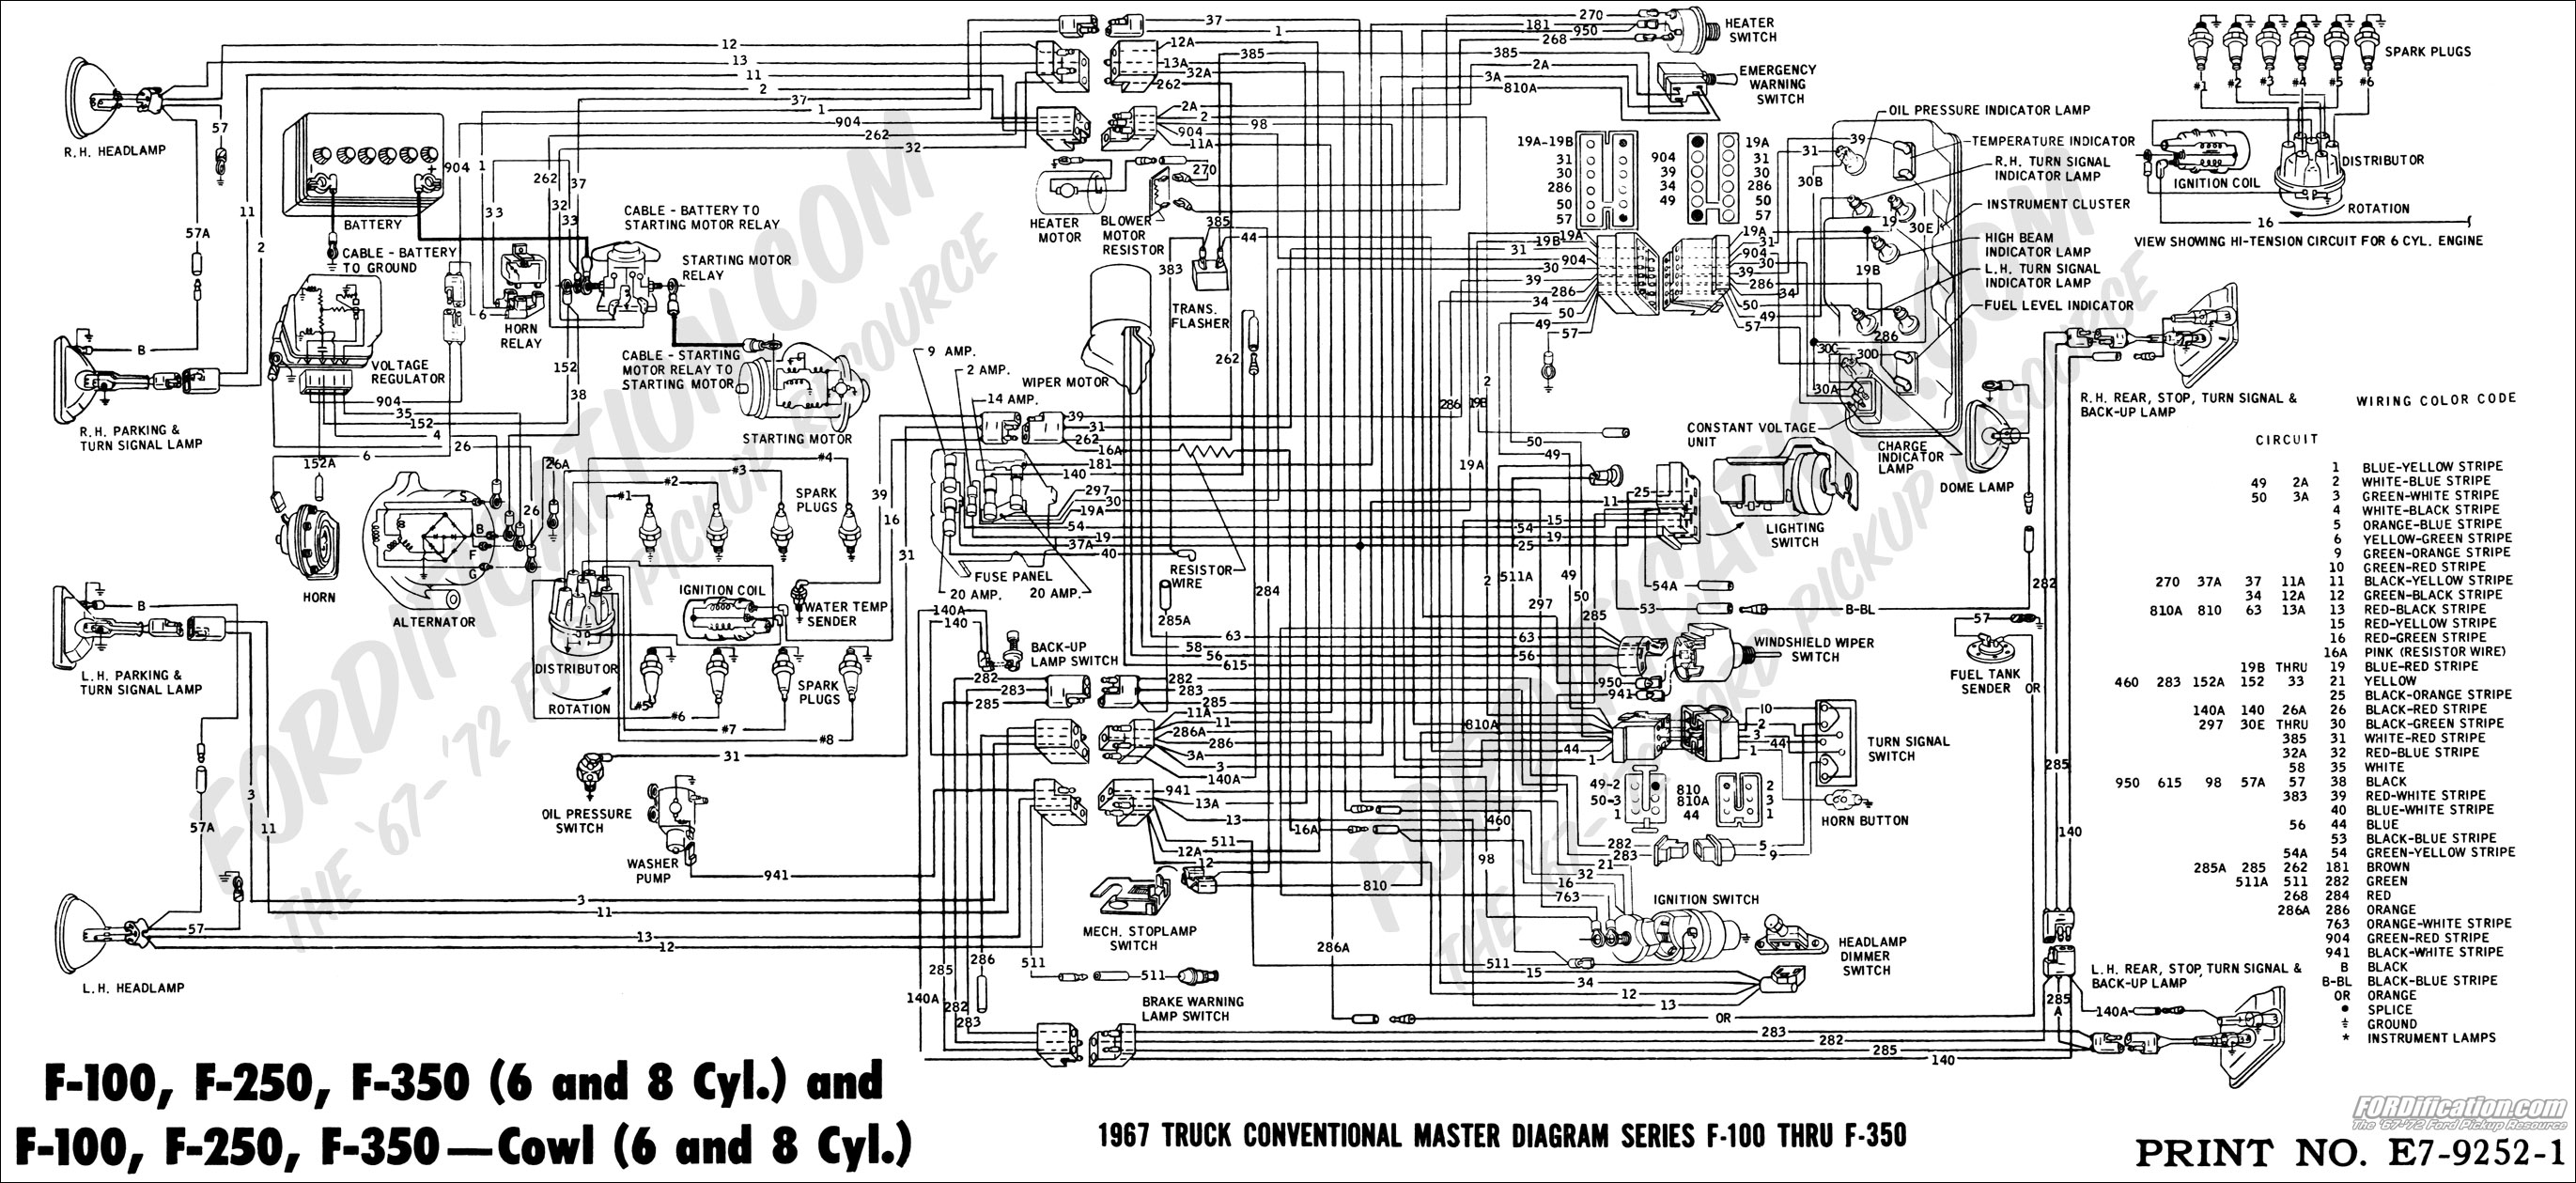 f700 7 pin wiring diagram f700 image wiring diagram wiring diagram f wiring image wiring diagram on f700 7 pin wiring diagram